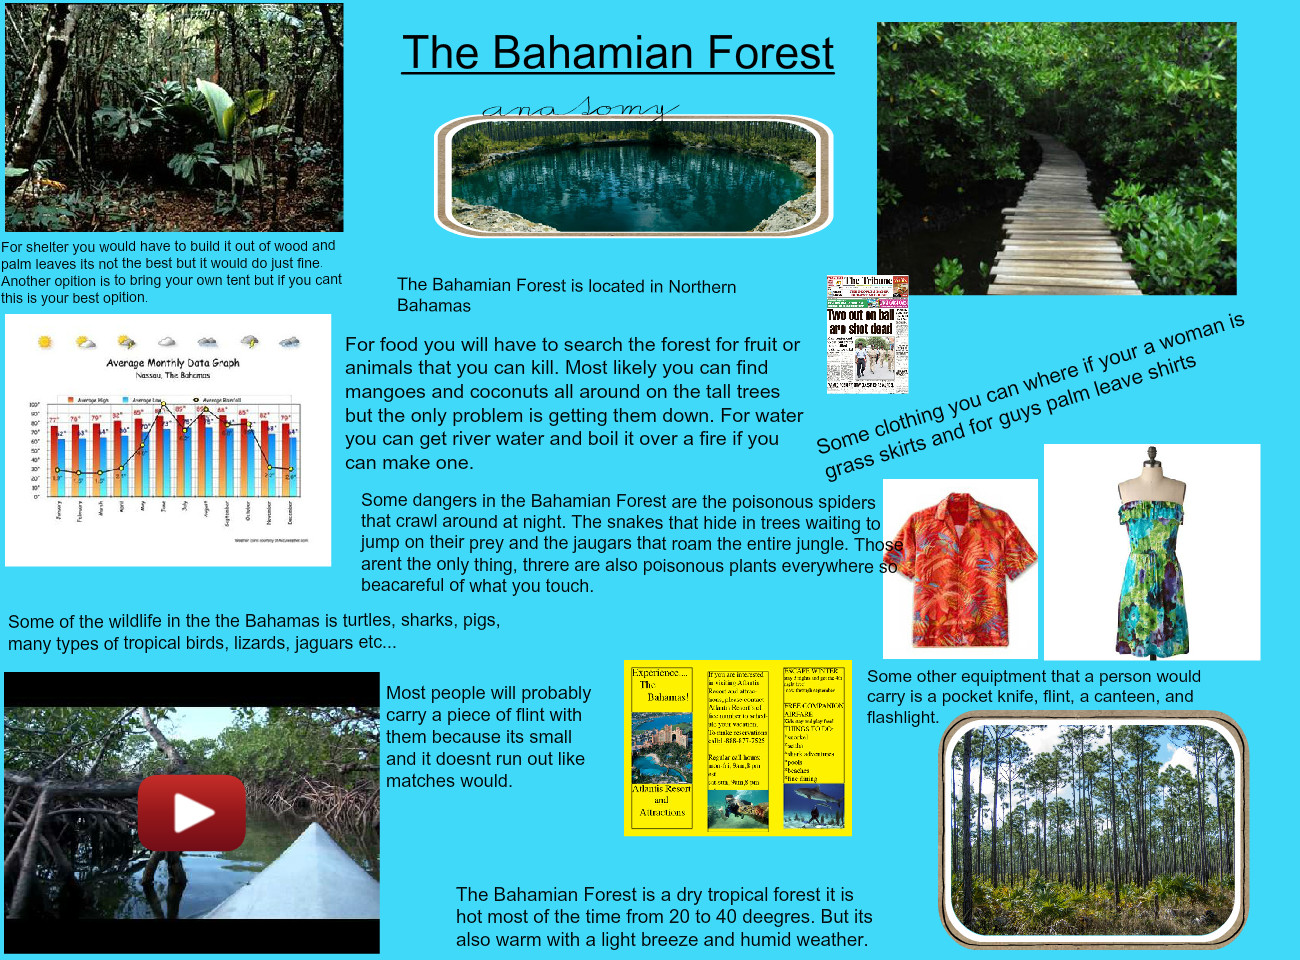 The Bahamian forest